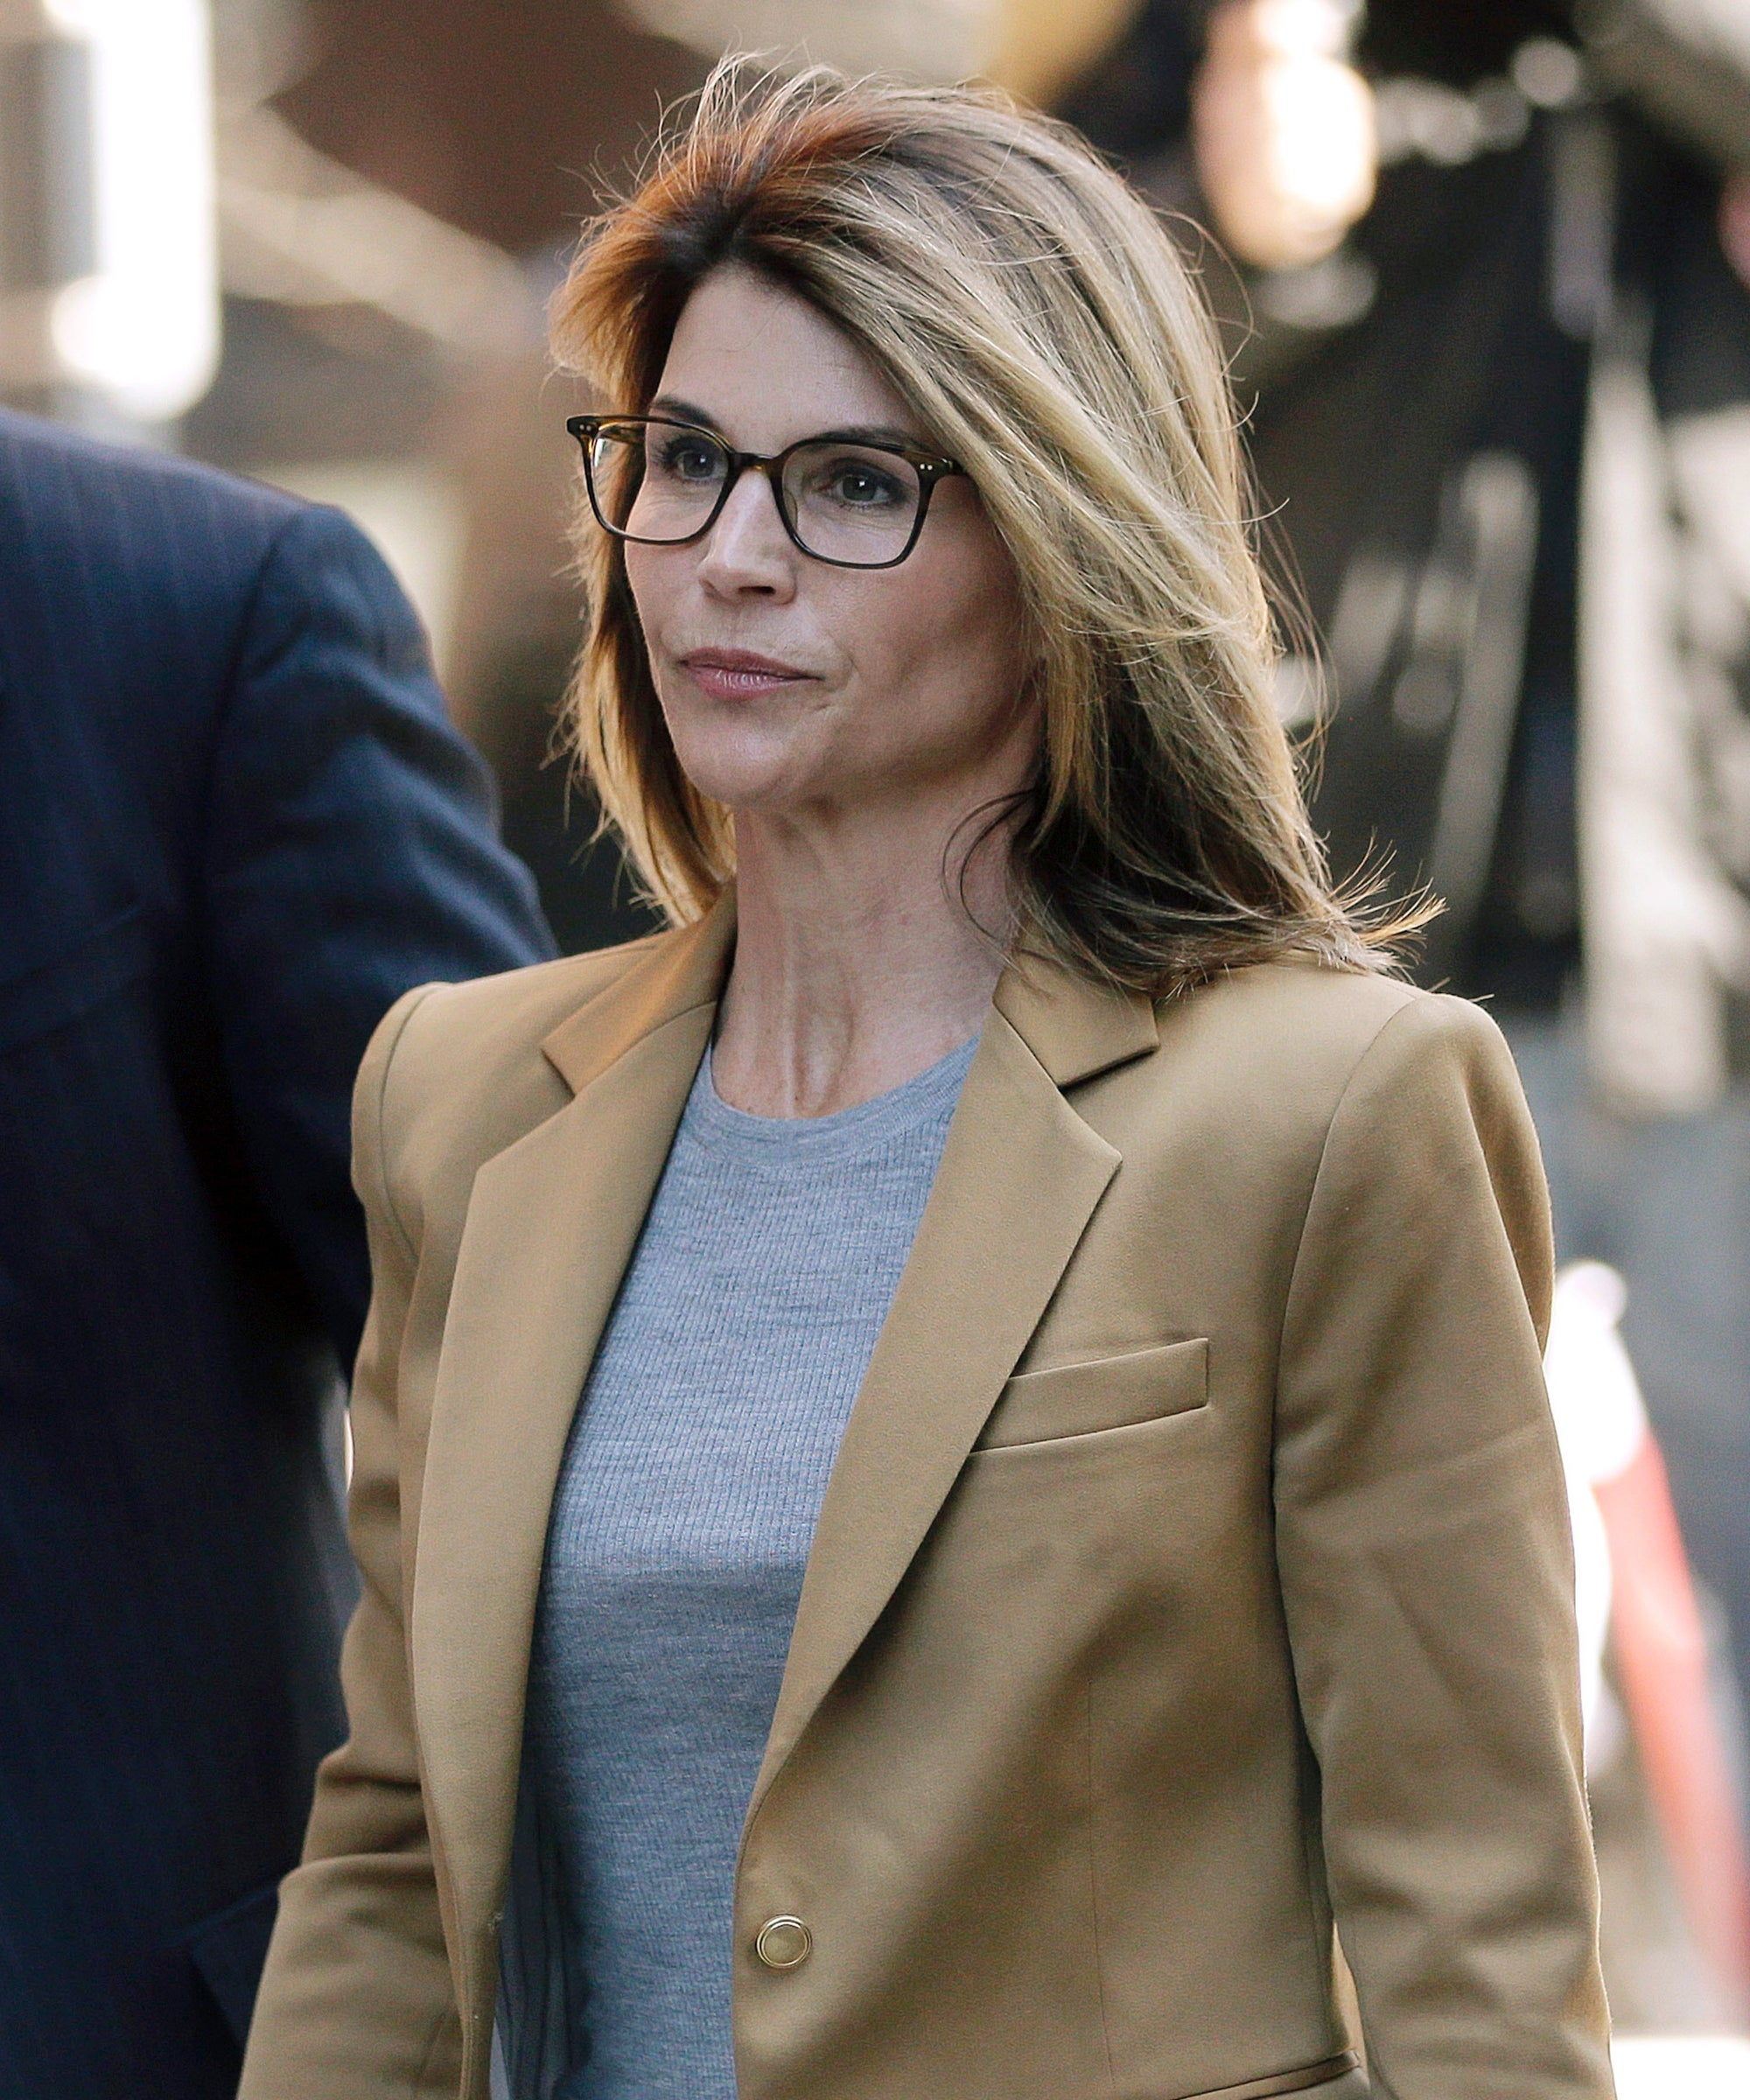 What To Know About Lori Loughlin's College Scandal Case Before Her Court Arraignment